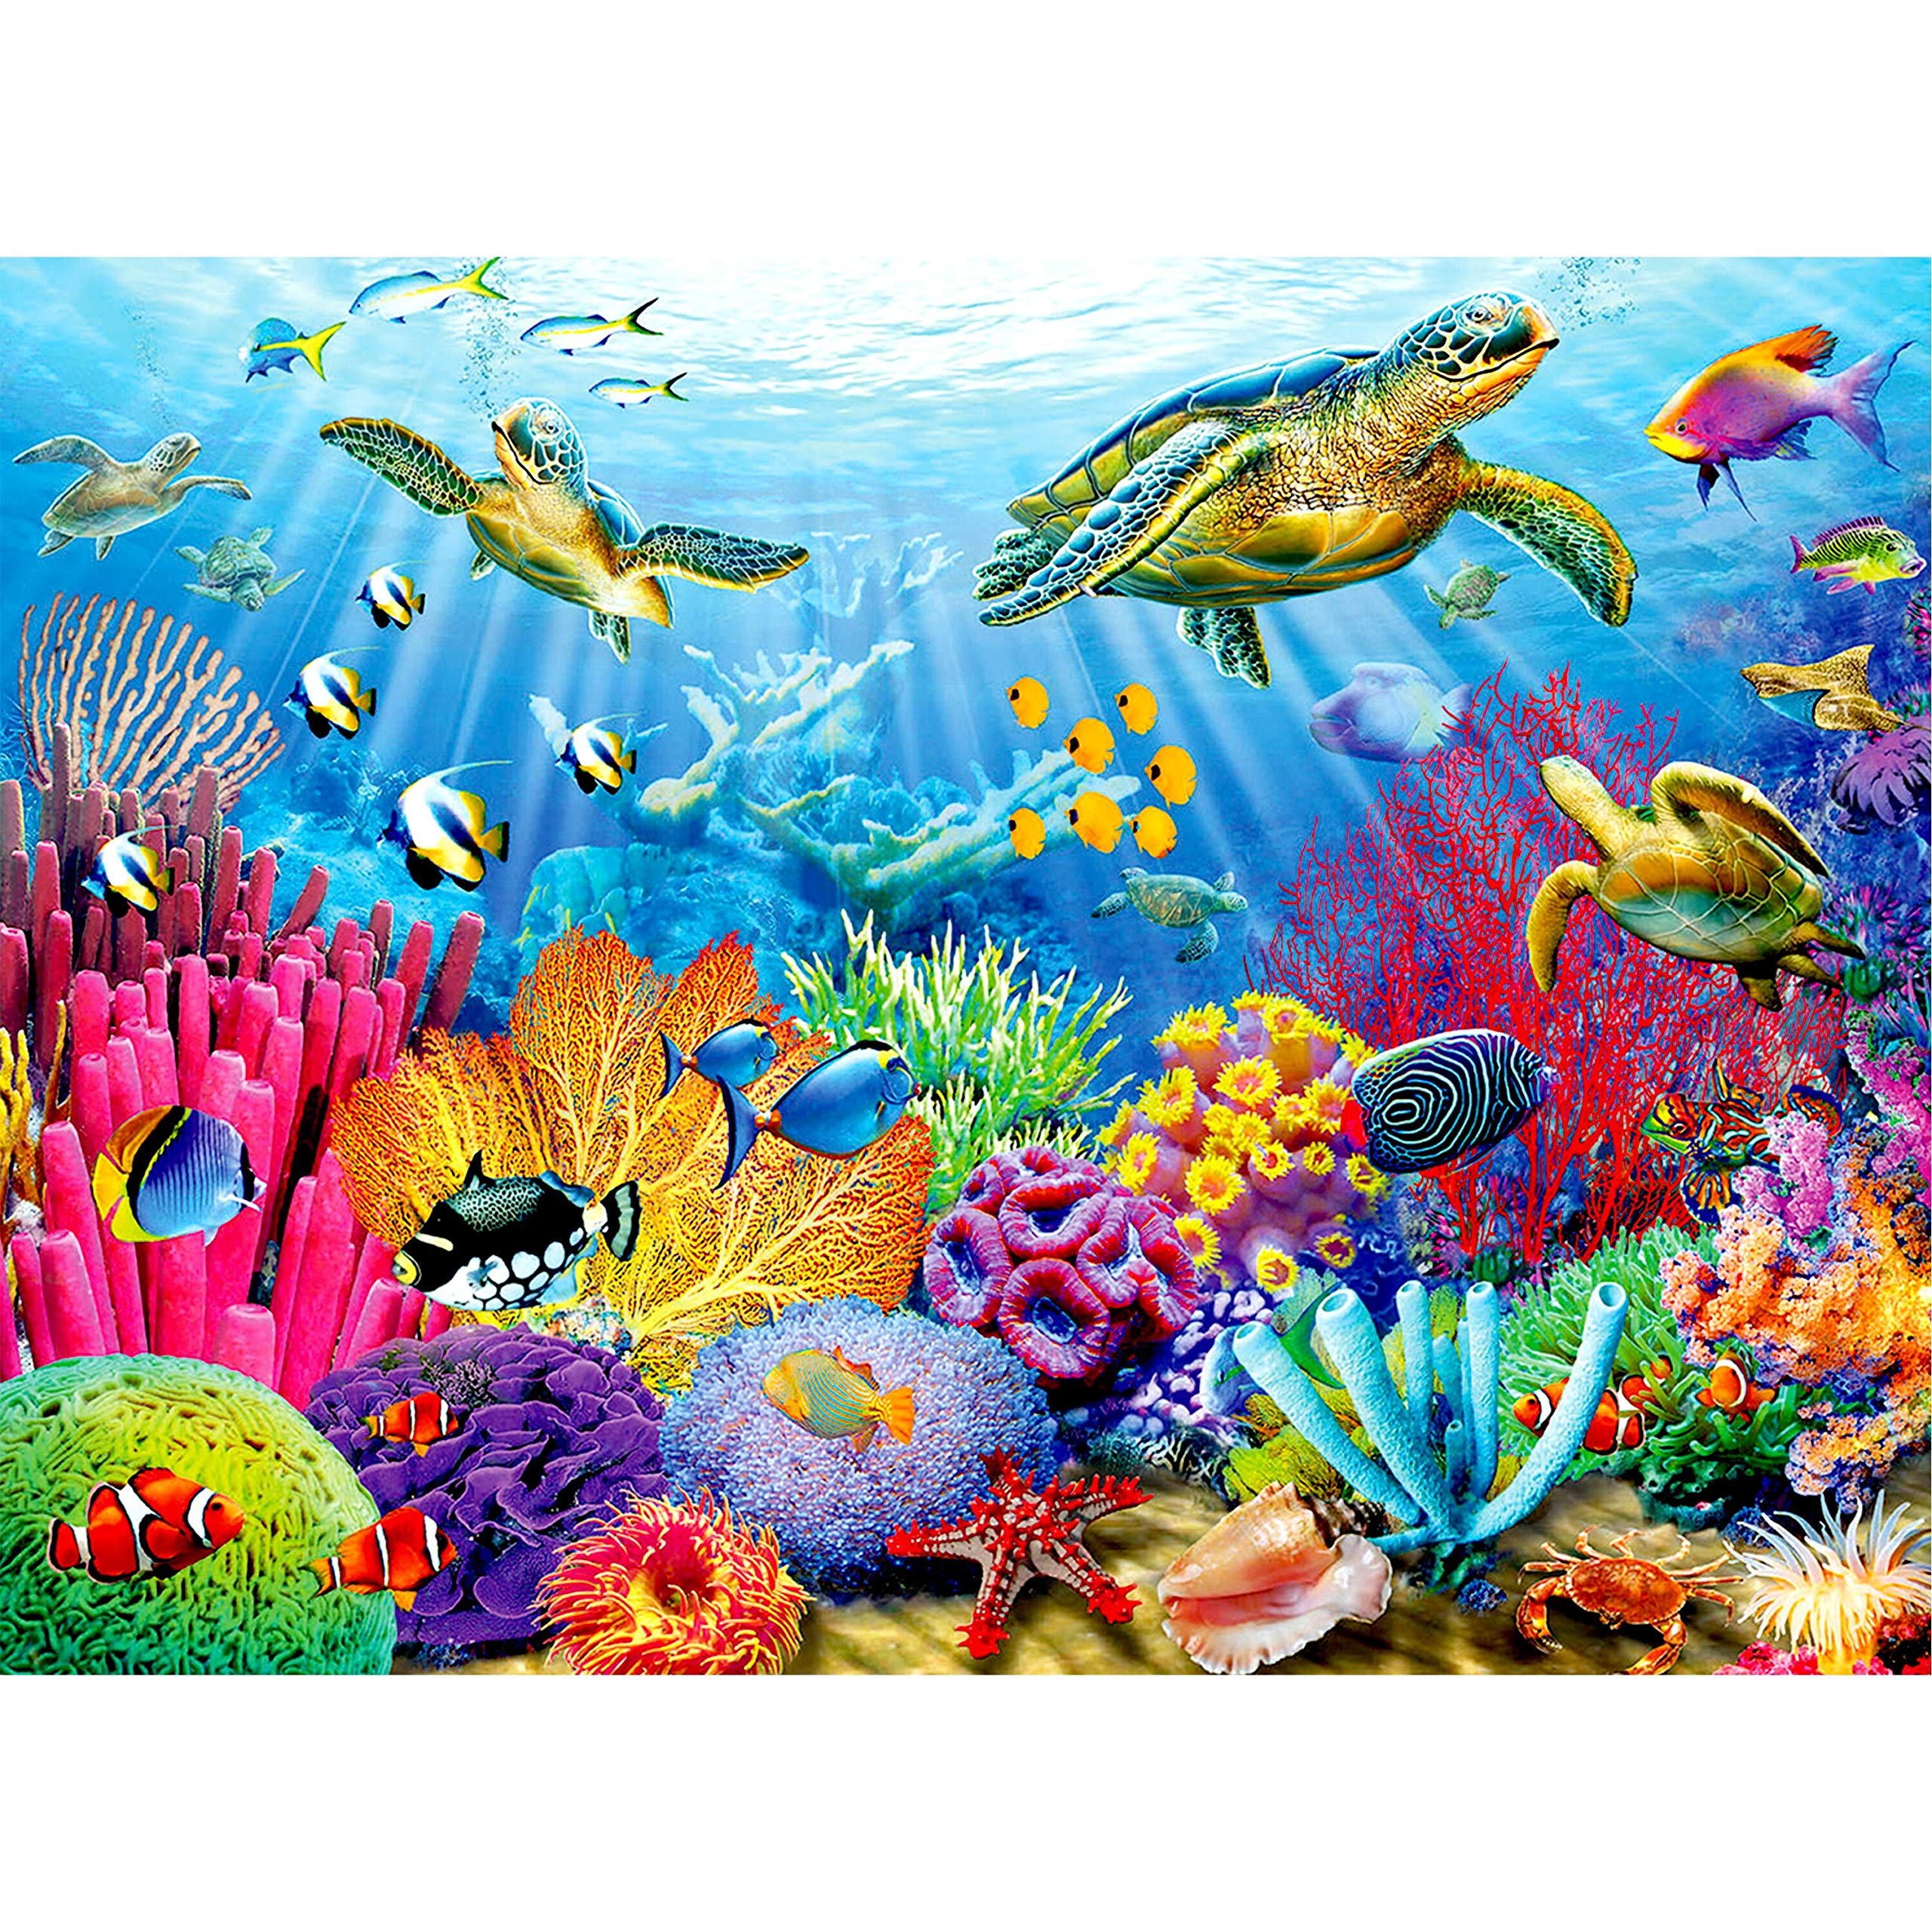 Ravensburger Tropical Waters 500 Piece Jigsaw Puzzle for Adults - Every Piece is Unique, Softclick Technology Means Pieces Fit Together Perfectly by Ravensburger